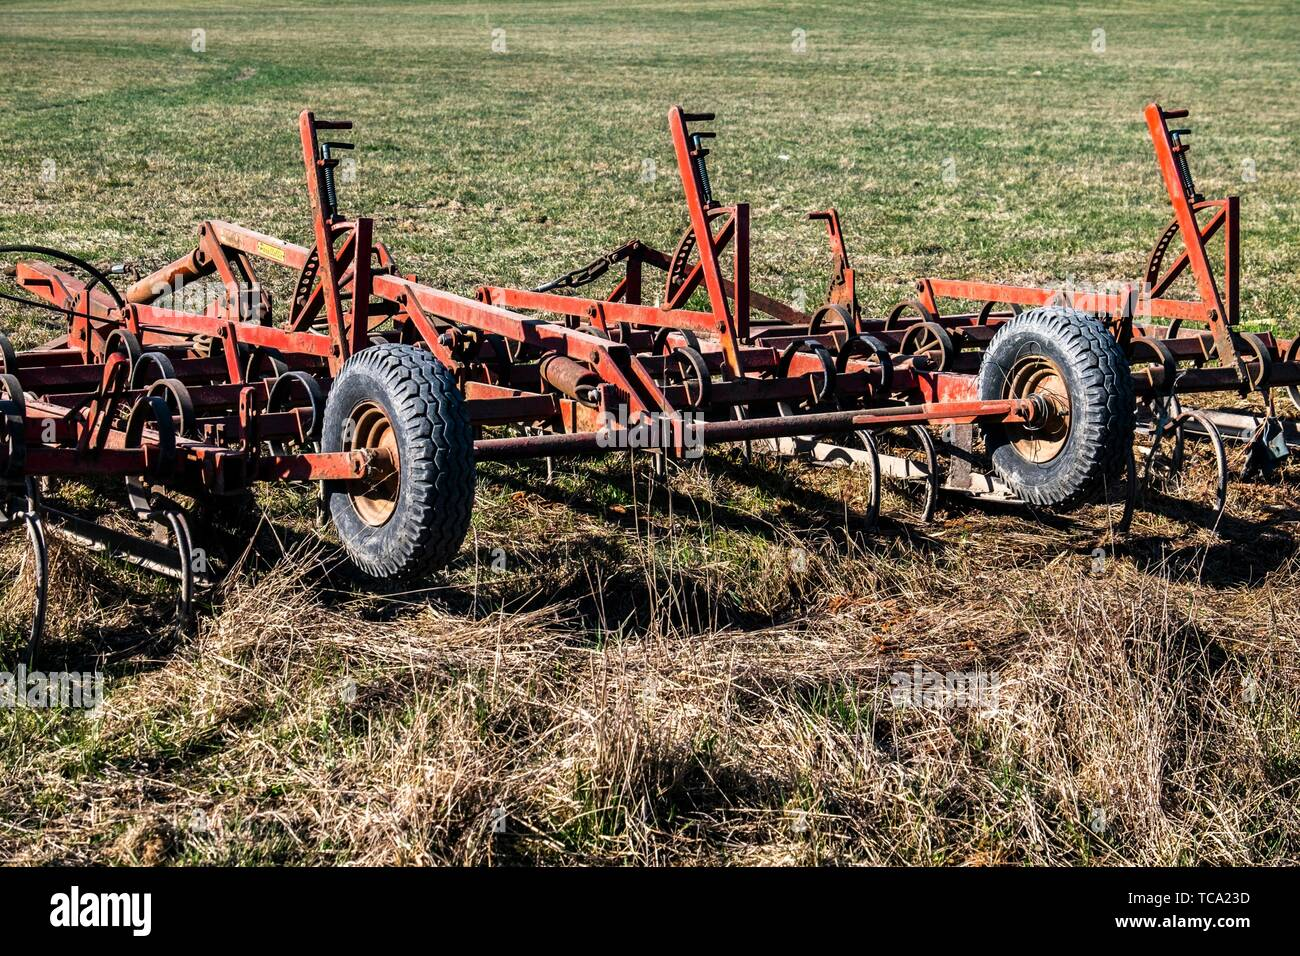 Tractor equipment on field in Sweden. - Stock Image